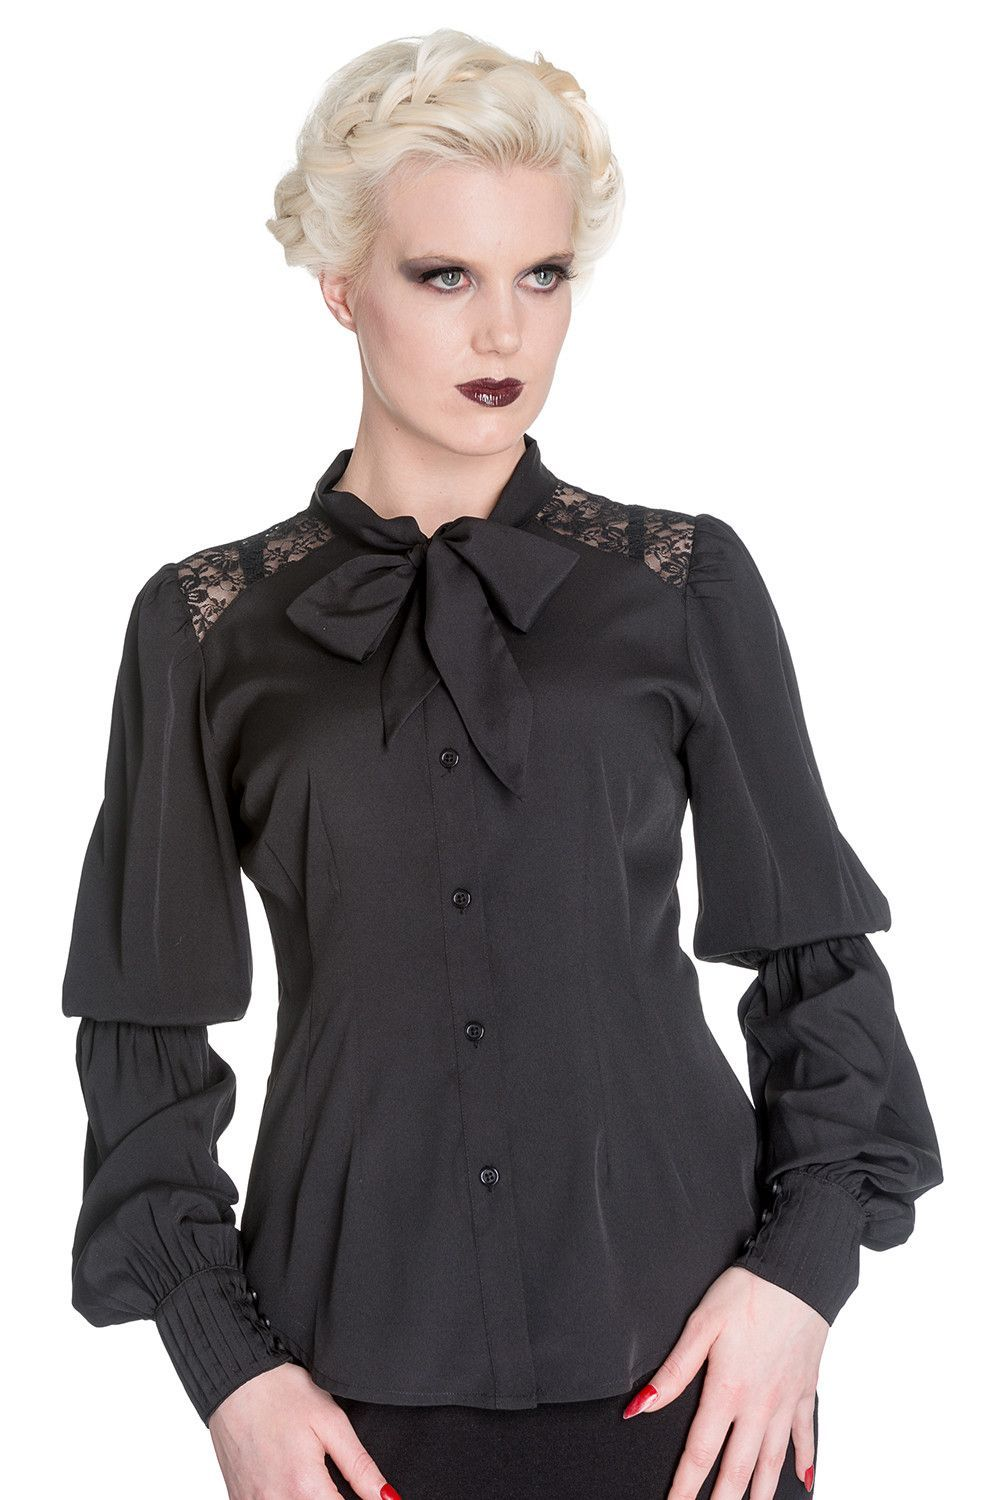 bc16f584164 Skelapparel - Gothic Victorian Romance Black Chiffon Bishop Long Sleeve  Blouse - Plus Size